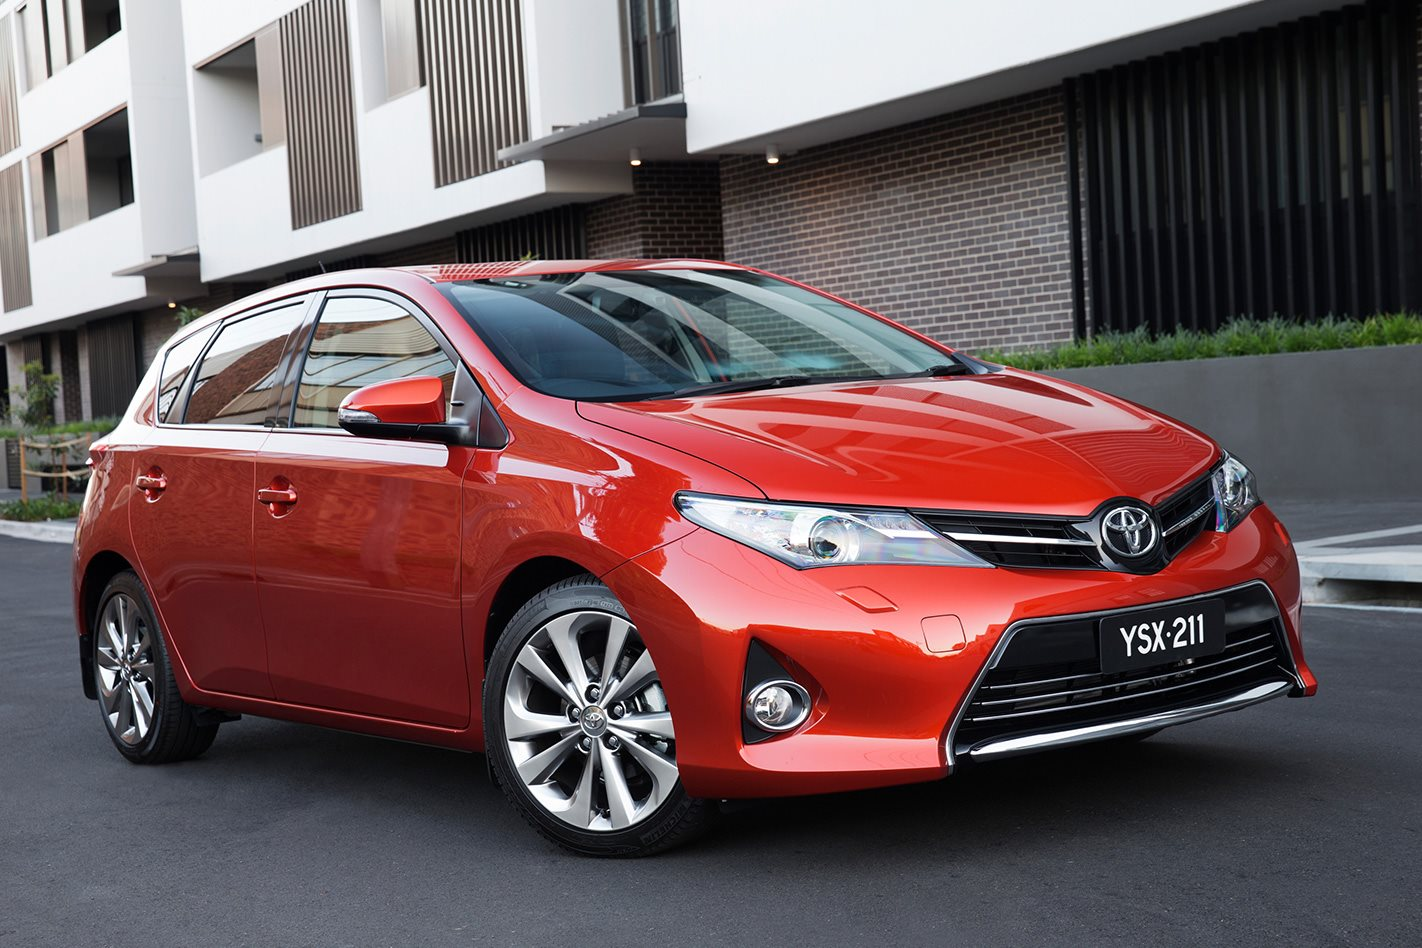 Toyota Australia Recalls 324 000 Cars Over Faulty Fuel System